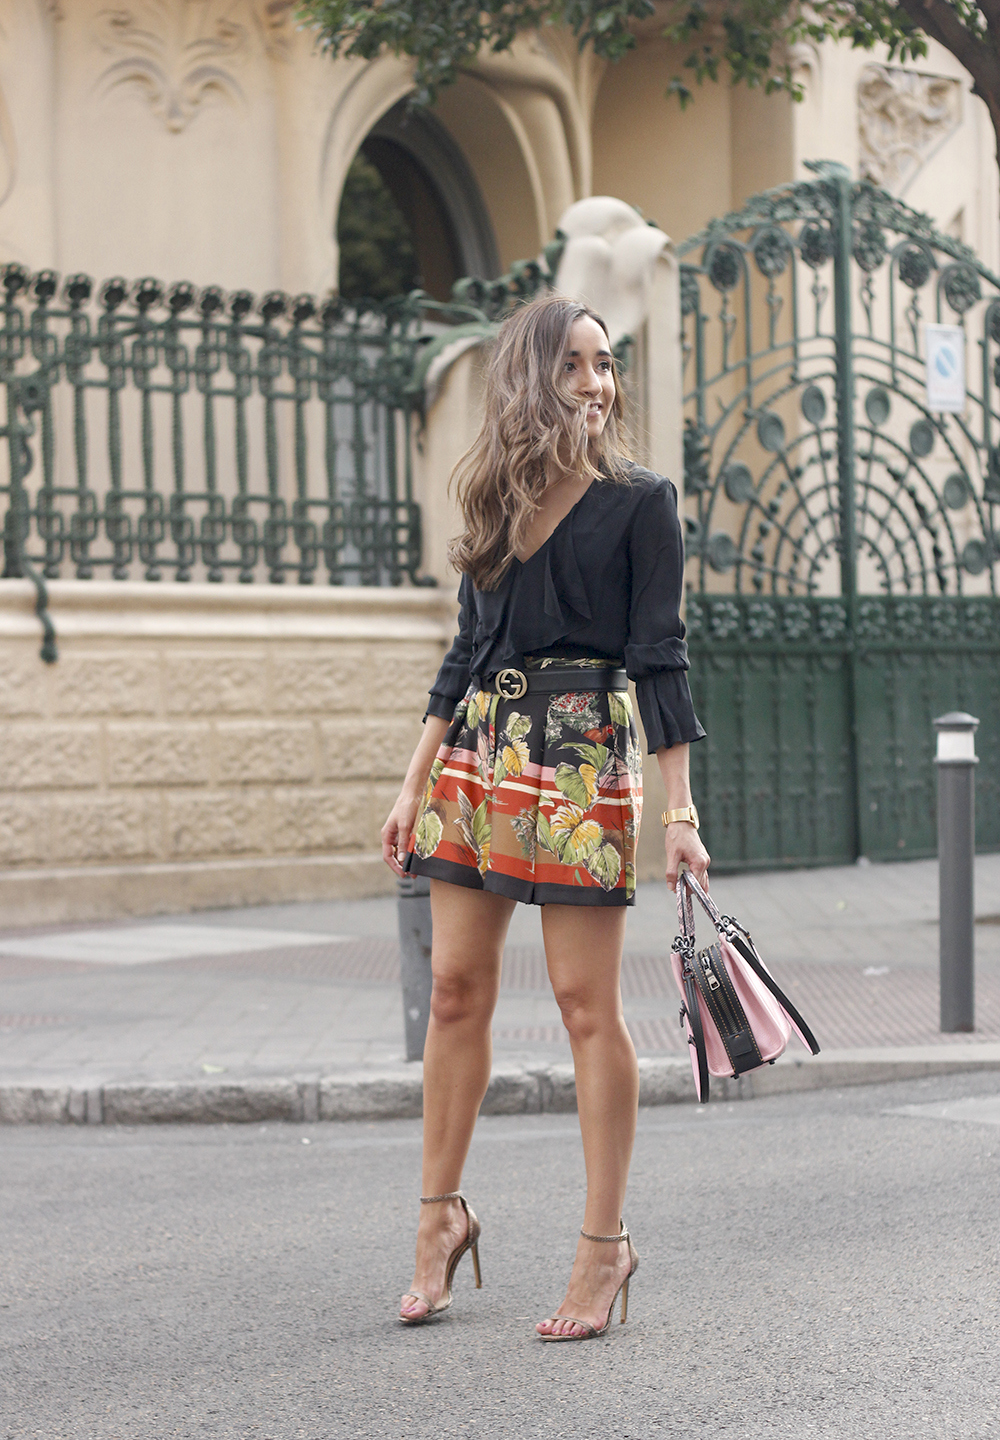 tropical print shorts caoch pink bag street style outfit 20199